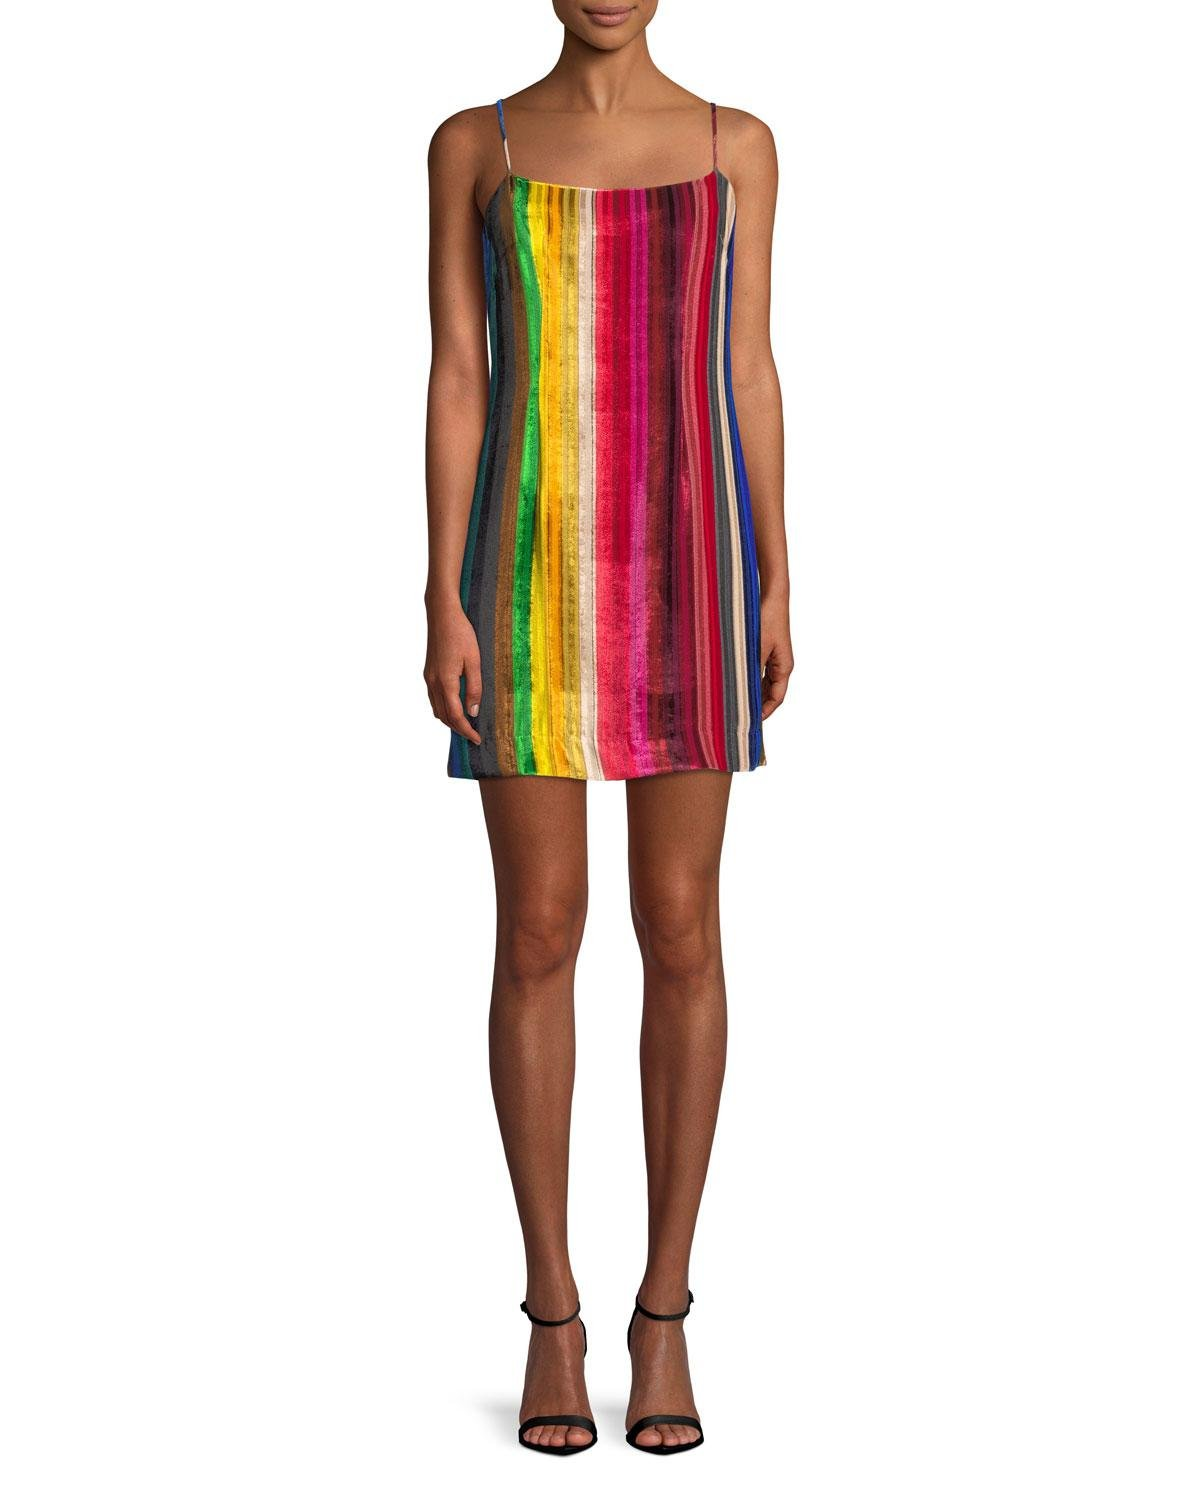 1a40203d91c Lyst - MILLY Rainbow Velvet Mini Slip Dress in Red - Save 56%